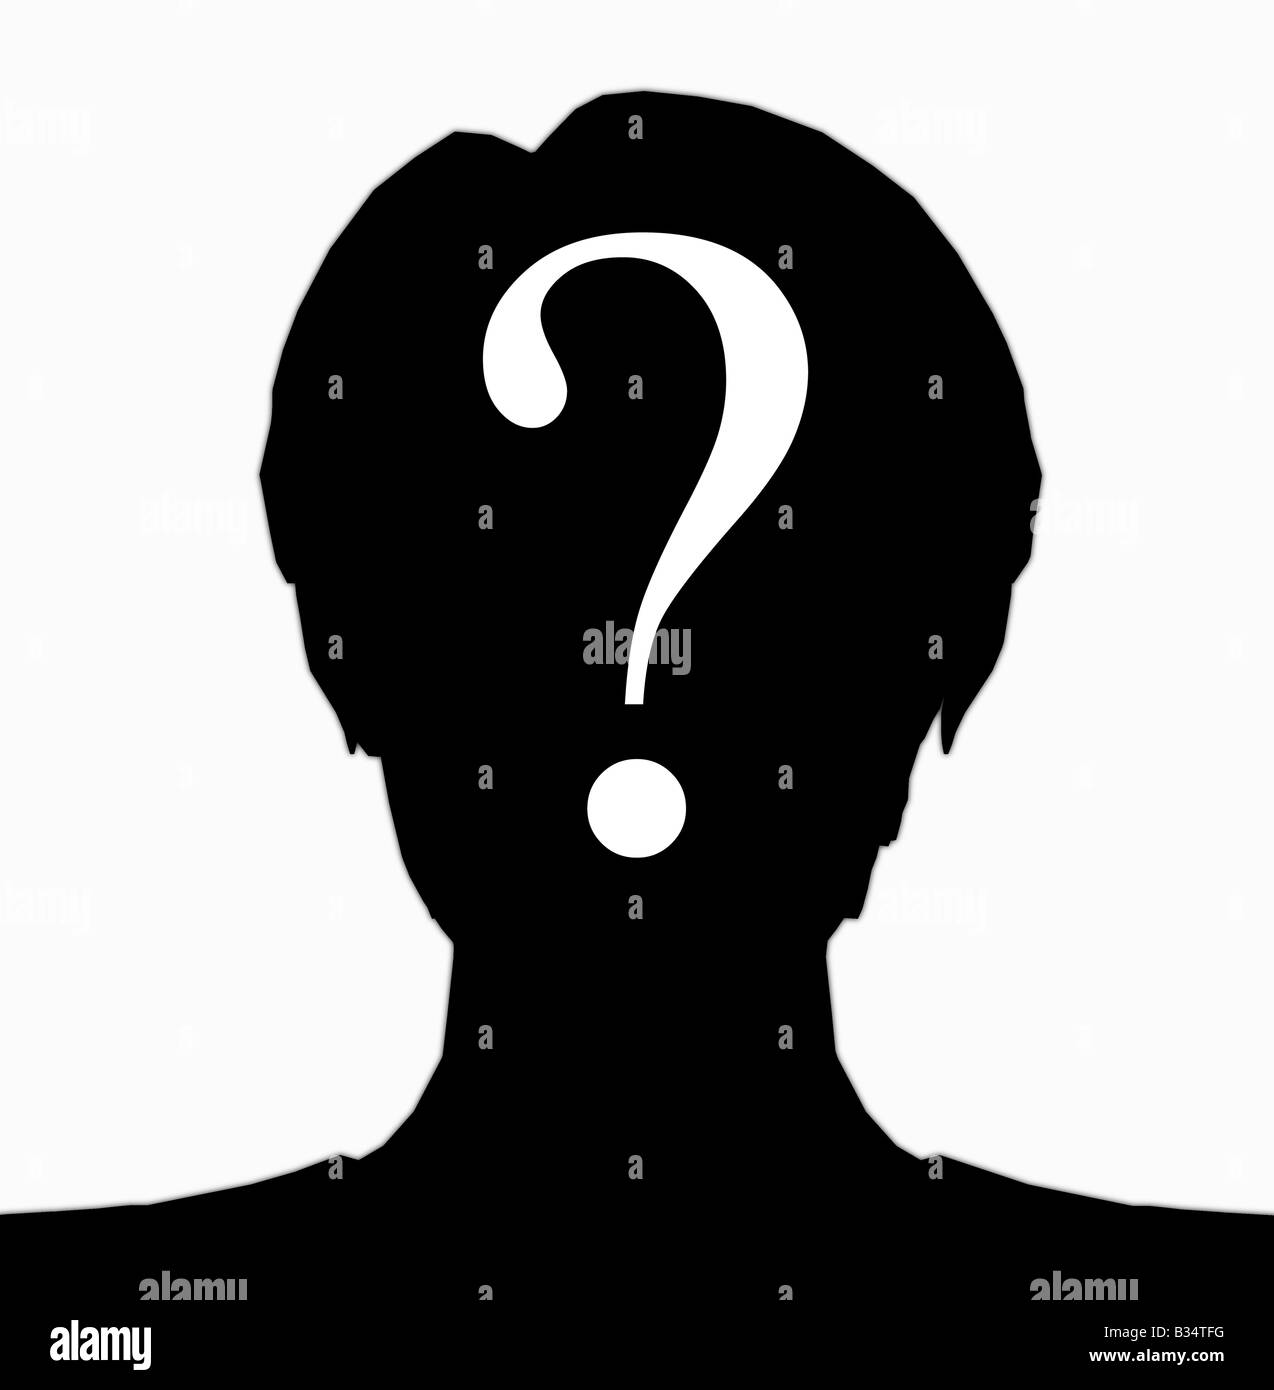 abstract silhouette of female head with question mark composited over face - Stock Image